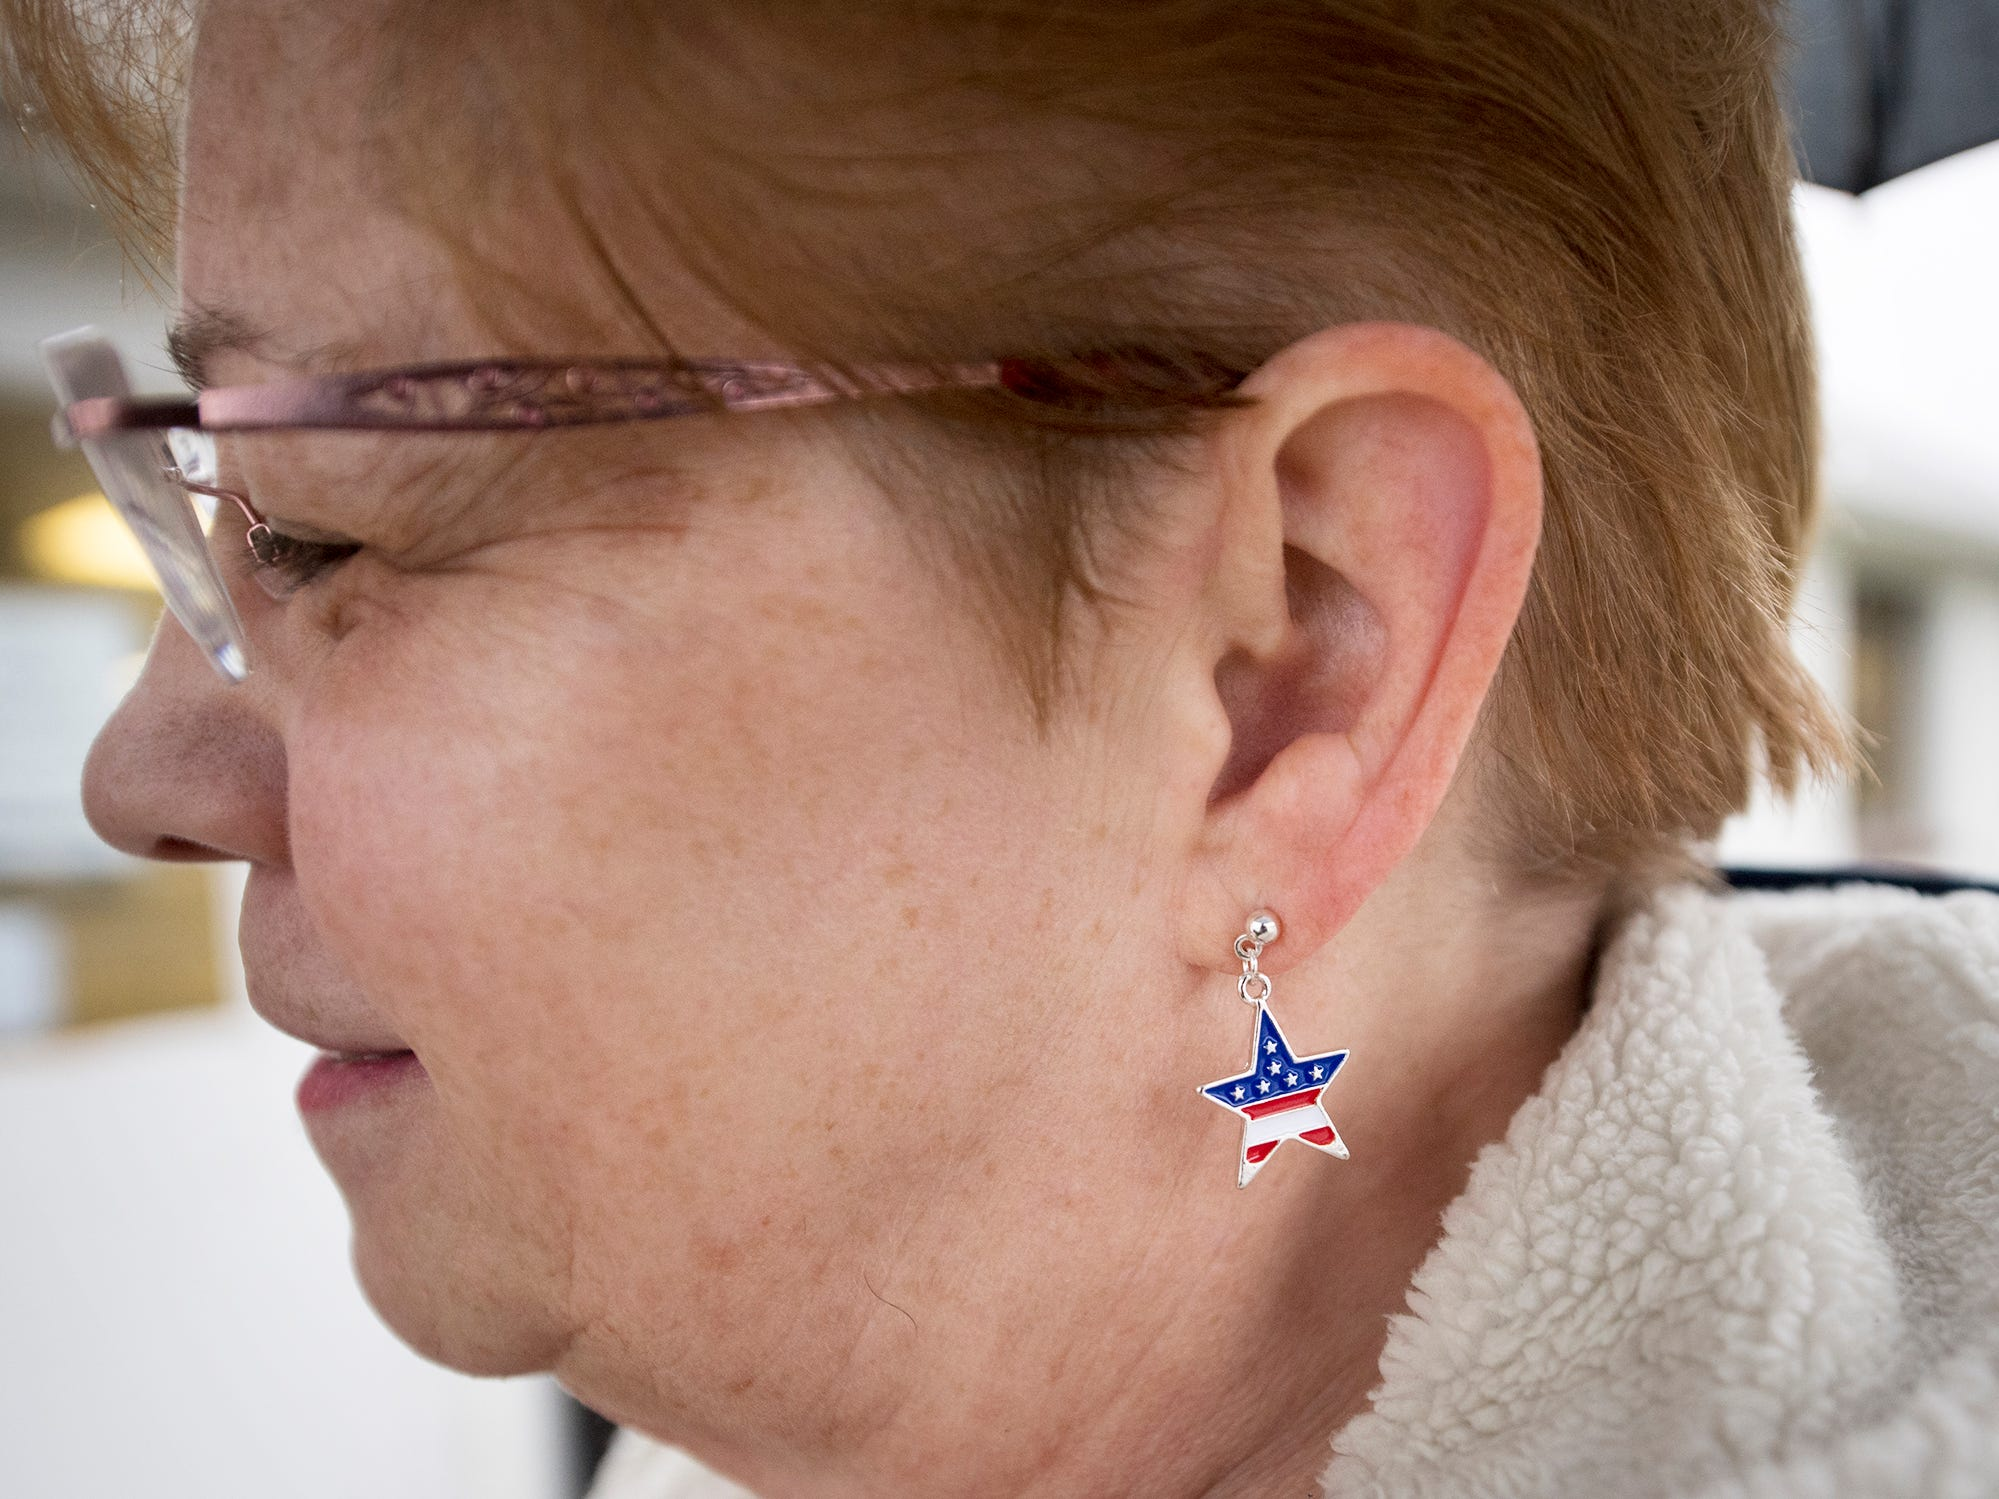 Kathy Zeiders wore patriotic earrings under an umbrella on Election Day in Thomasville where she voted.